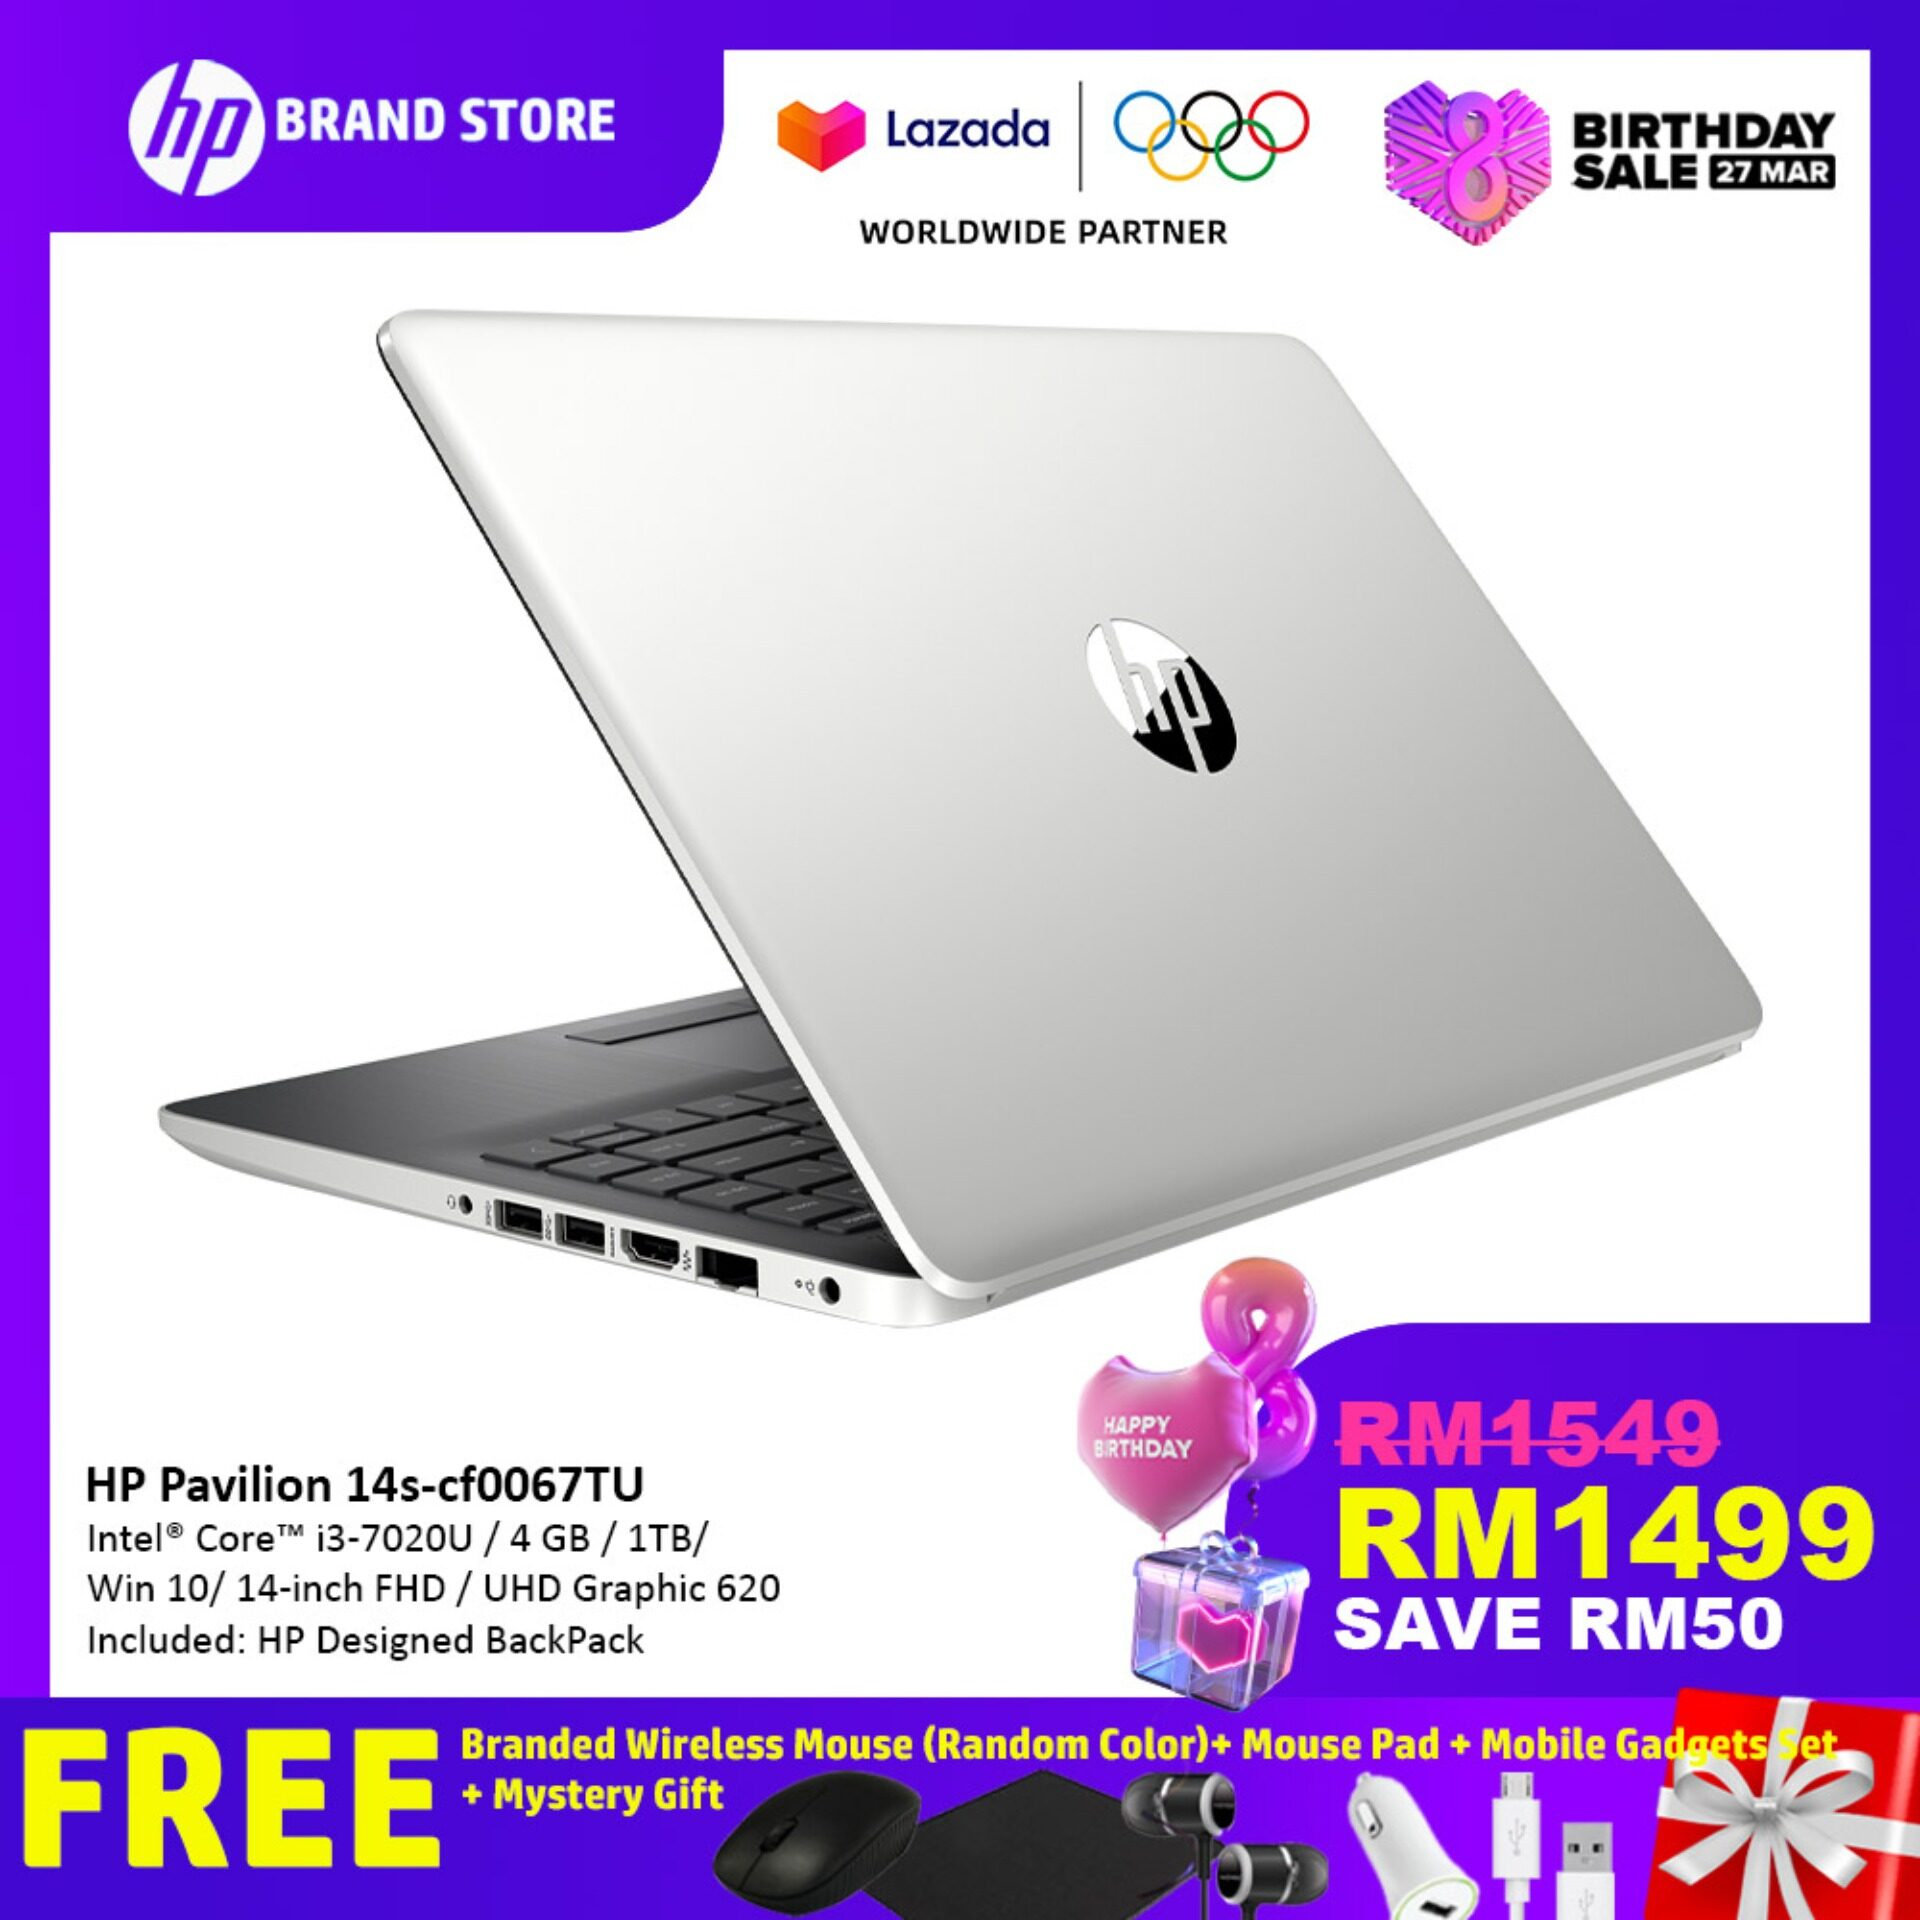 HP 14s-cf0066TU/ 14s-cf0067TU Notebook Pale Gold/ Natural Silver 6JM53PA/ 6JM55PA/i3-7020U /14IN/4GB/1TB/Intel/Win10 + Free HP Wireless Mouse (Random Color)+ Mouse Pad + Mobile Gadgets Set + Mystery Gift Malaysia